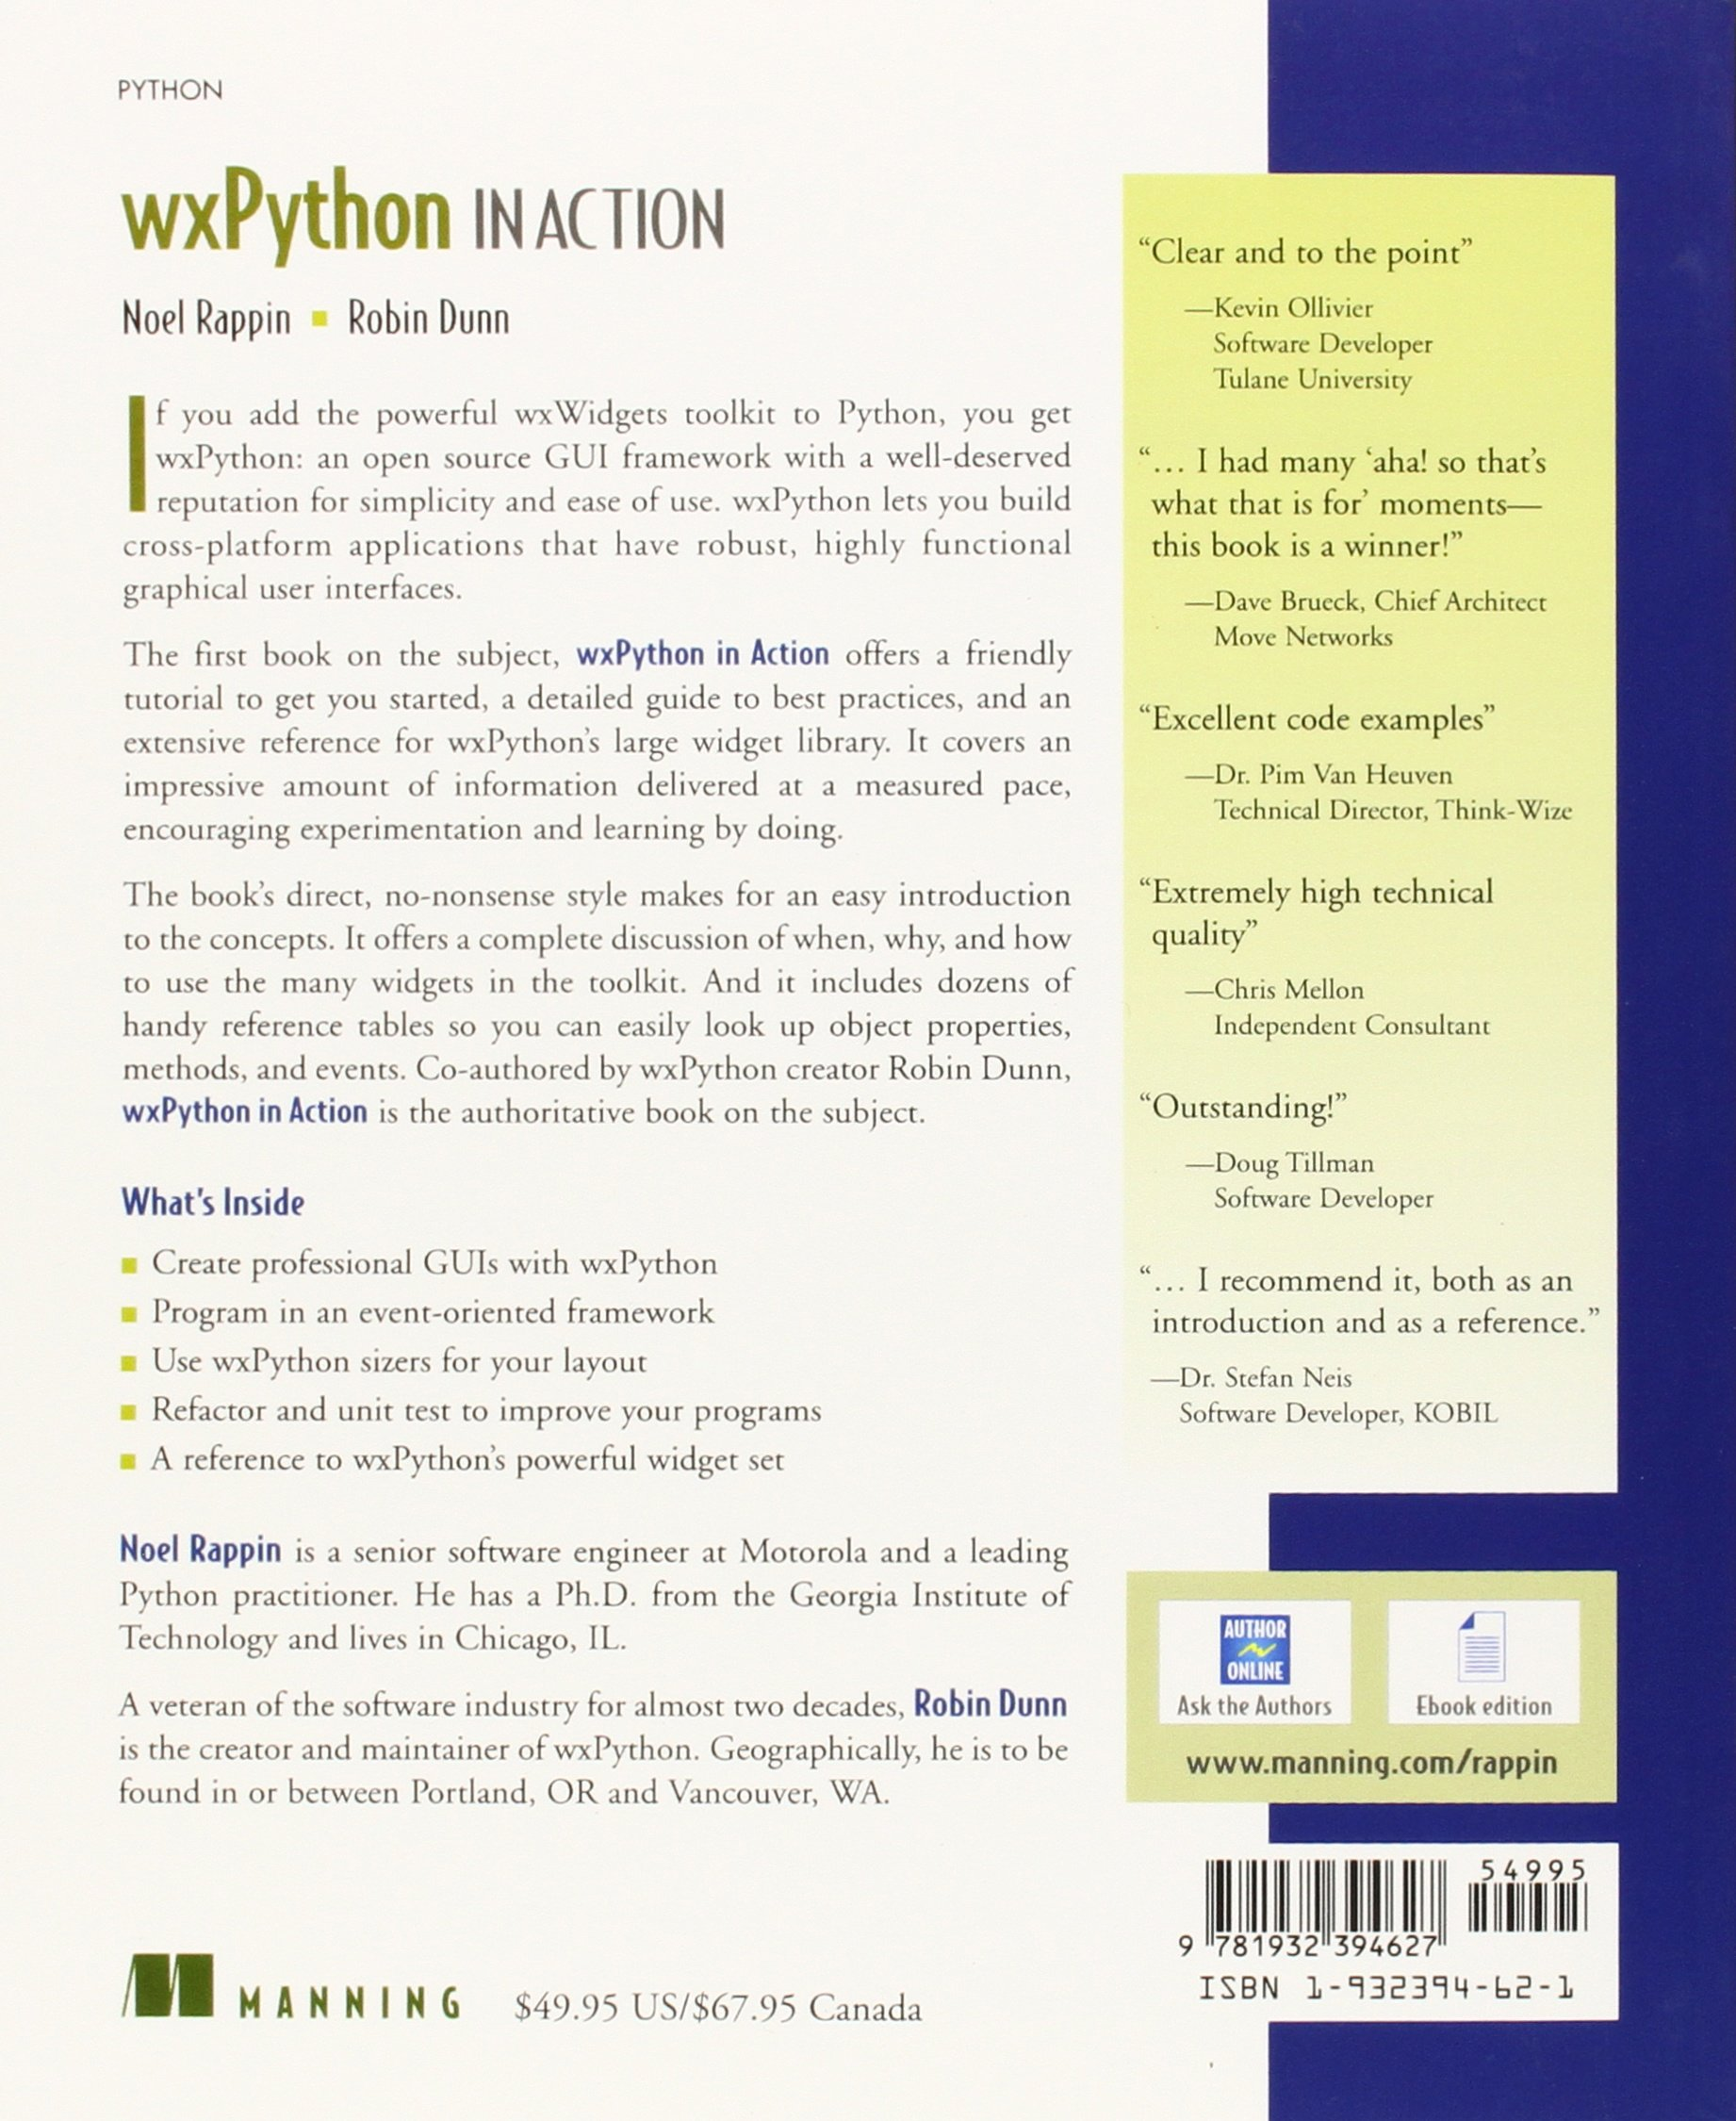 Wxpython in Action: Noel Rappin, Robin Dunn: 9781932394627